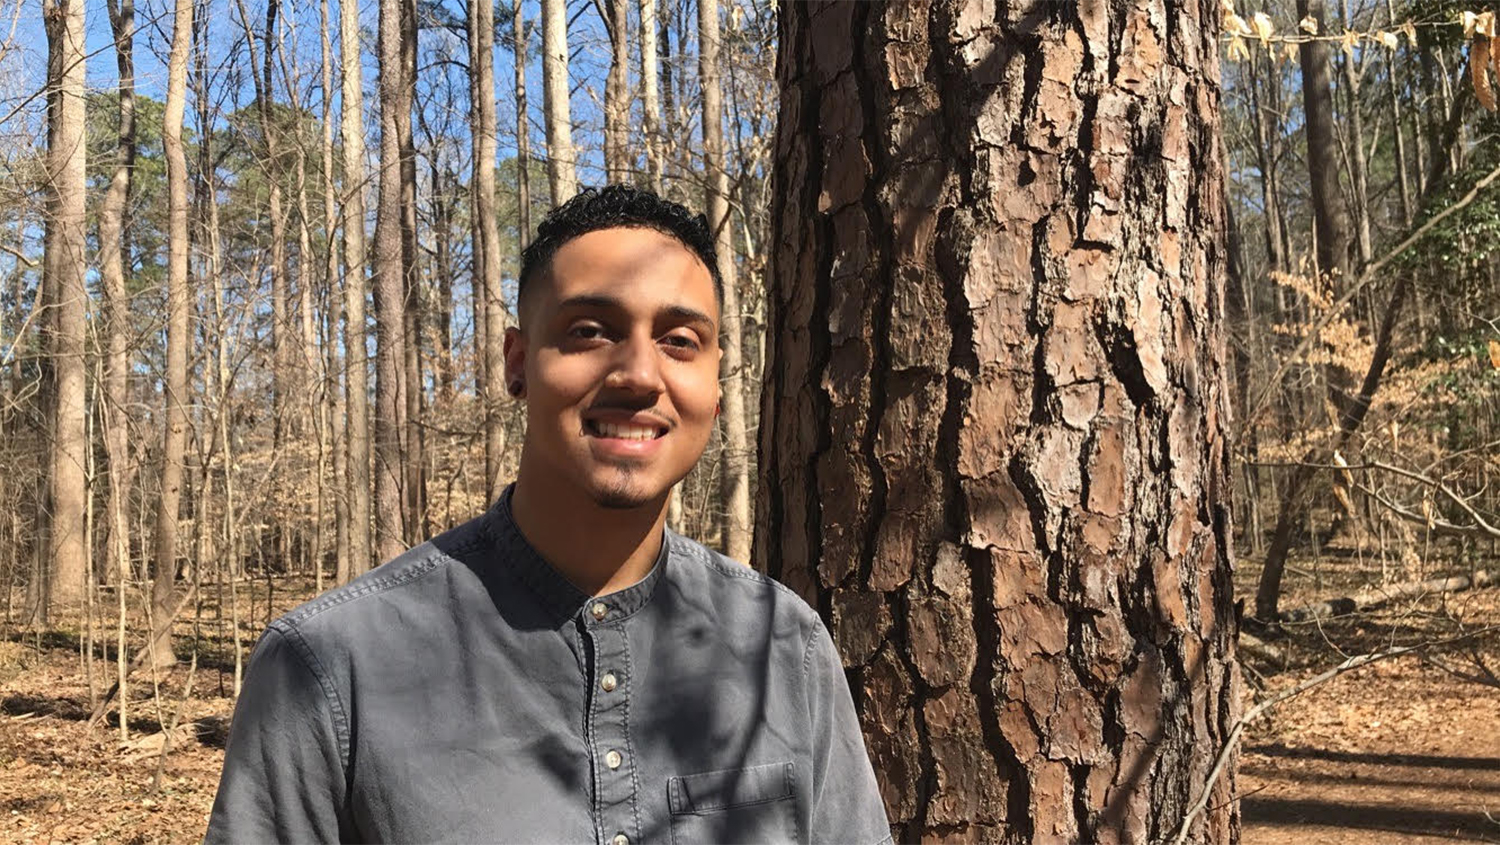 Norman poses and smiles in woods - Forestry Student Overcomes Challenges to Shine as Research Assistant - Forestry and Environmental Resources NC State University